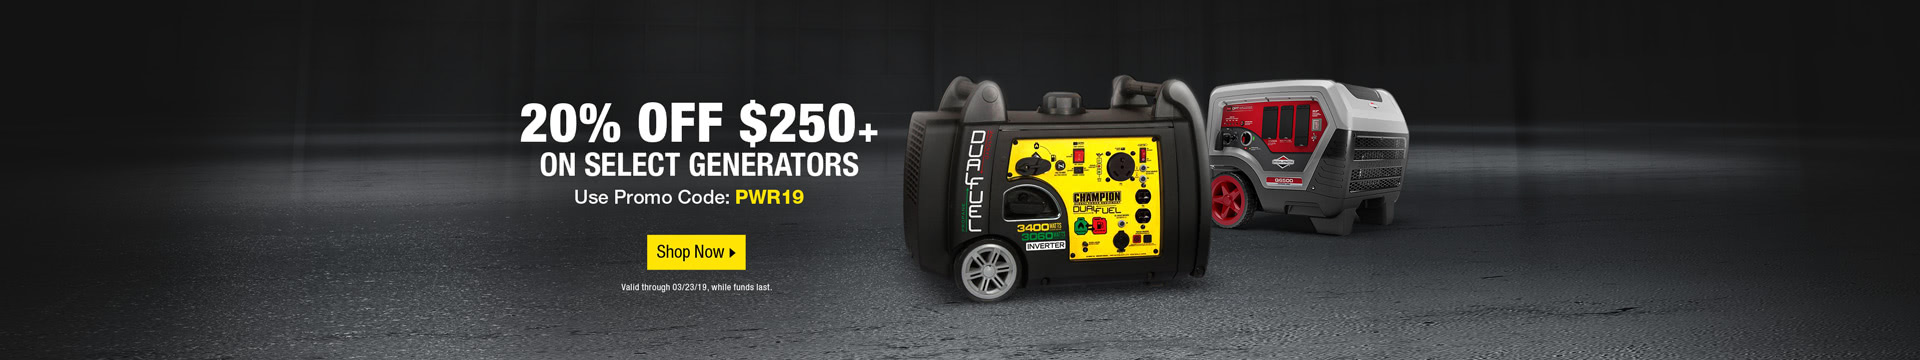 20% off $250+ on Select Generators